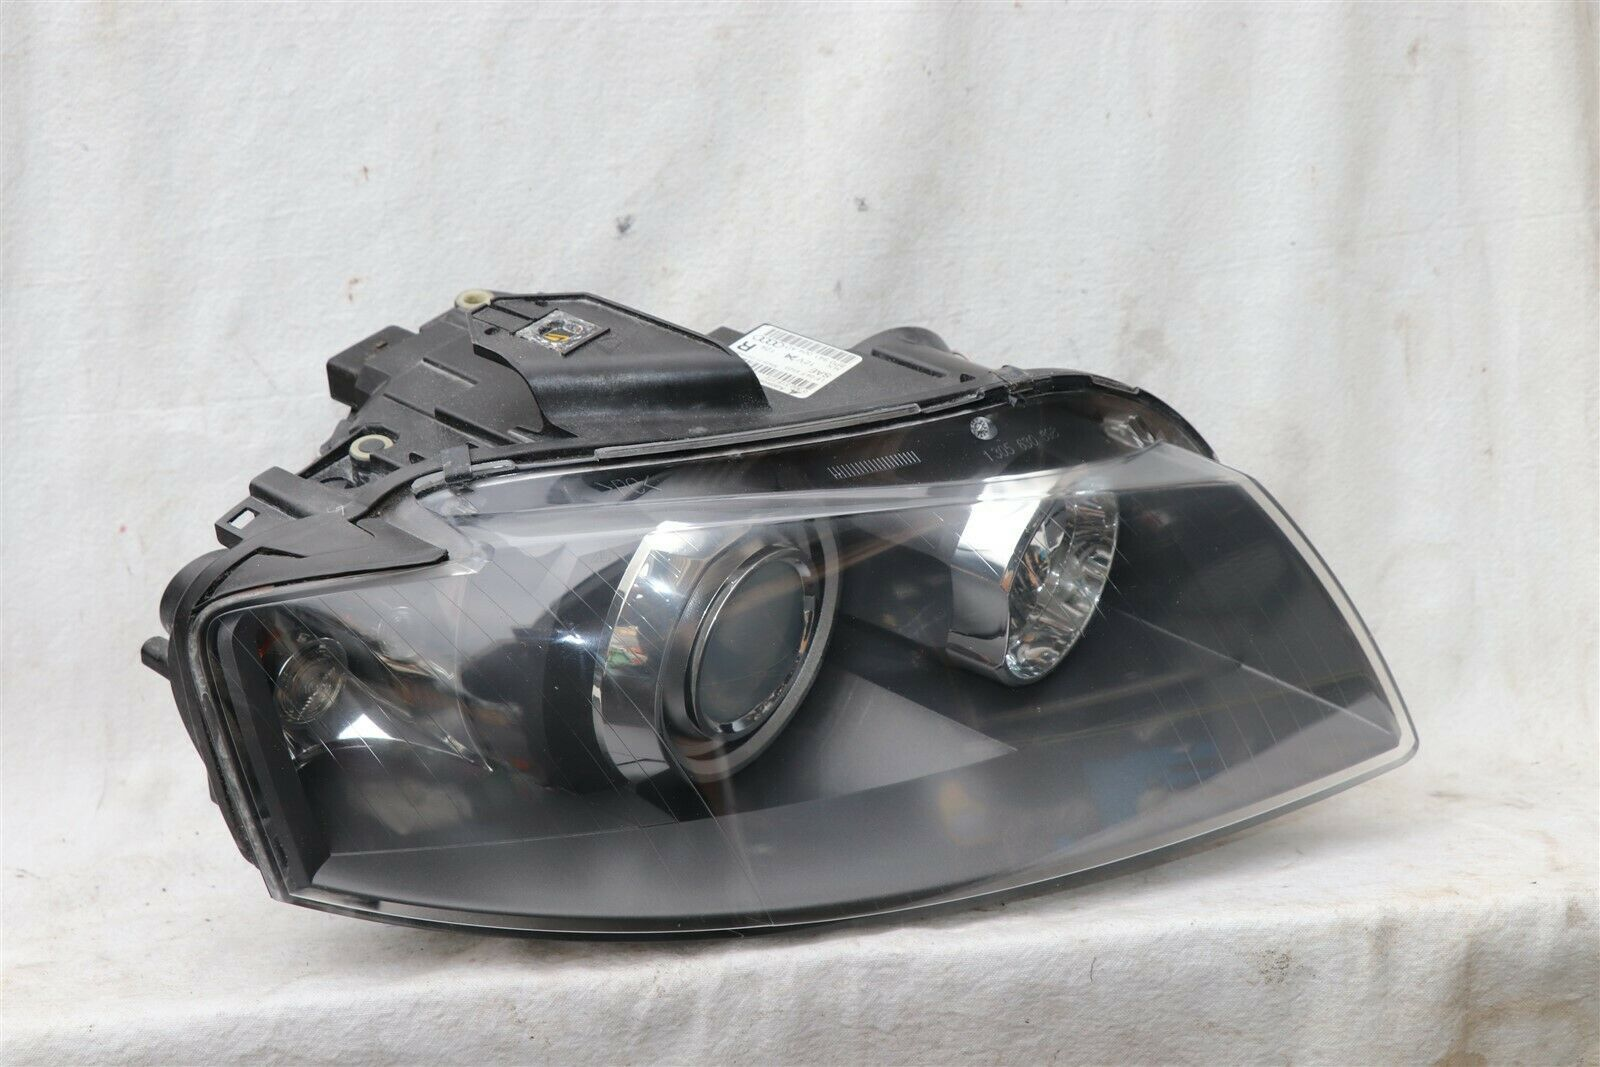 06-08 Audi A3 Xenon HID Headlight Head Light Lamp Passenger Right RH POLISHED